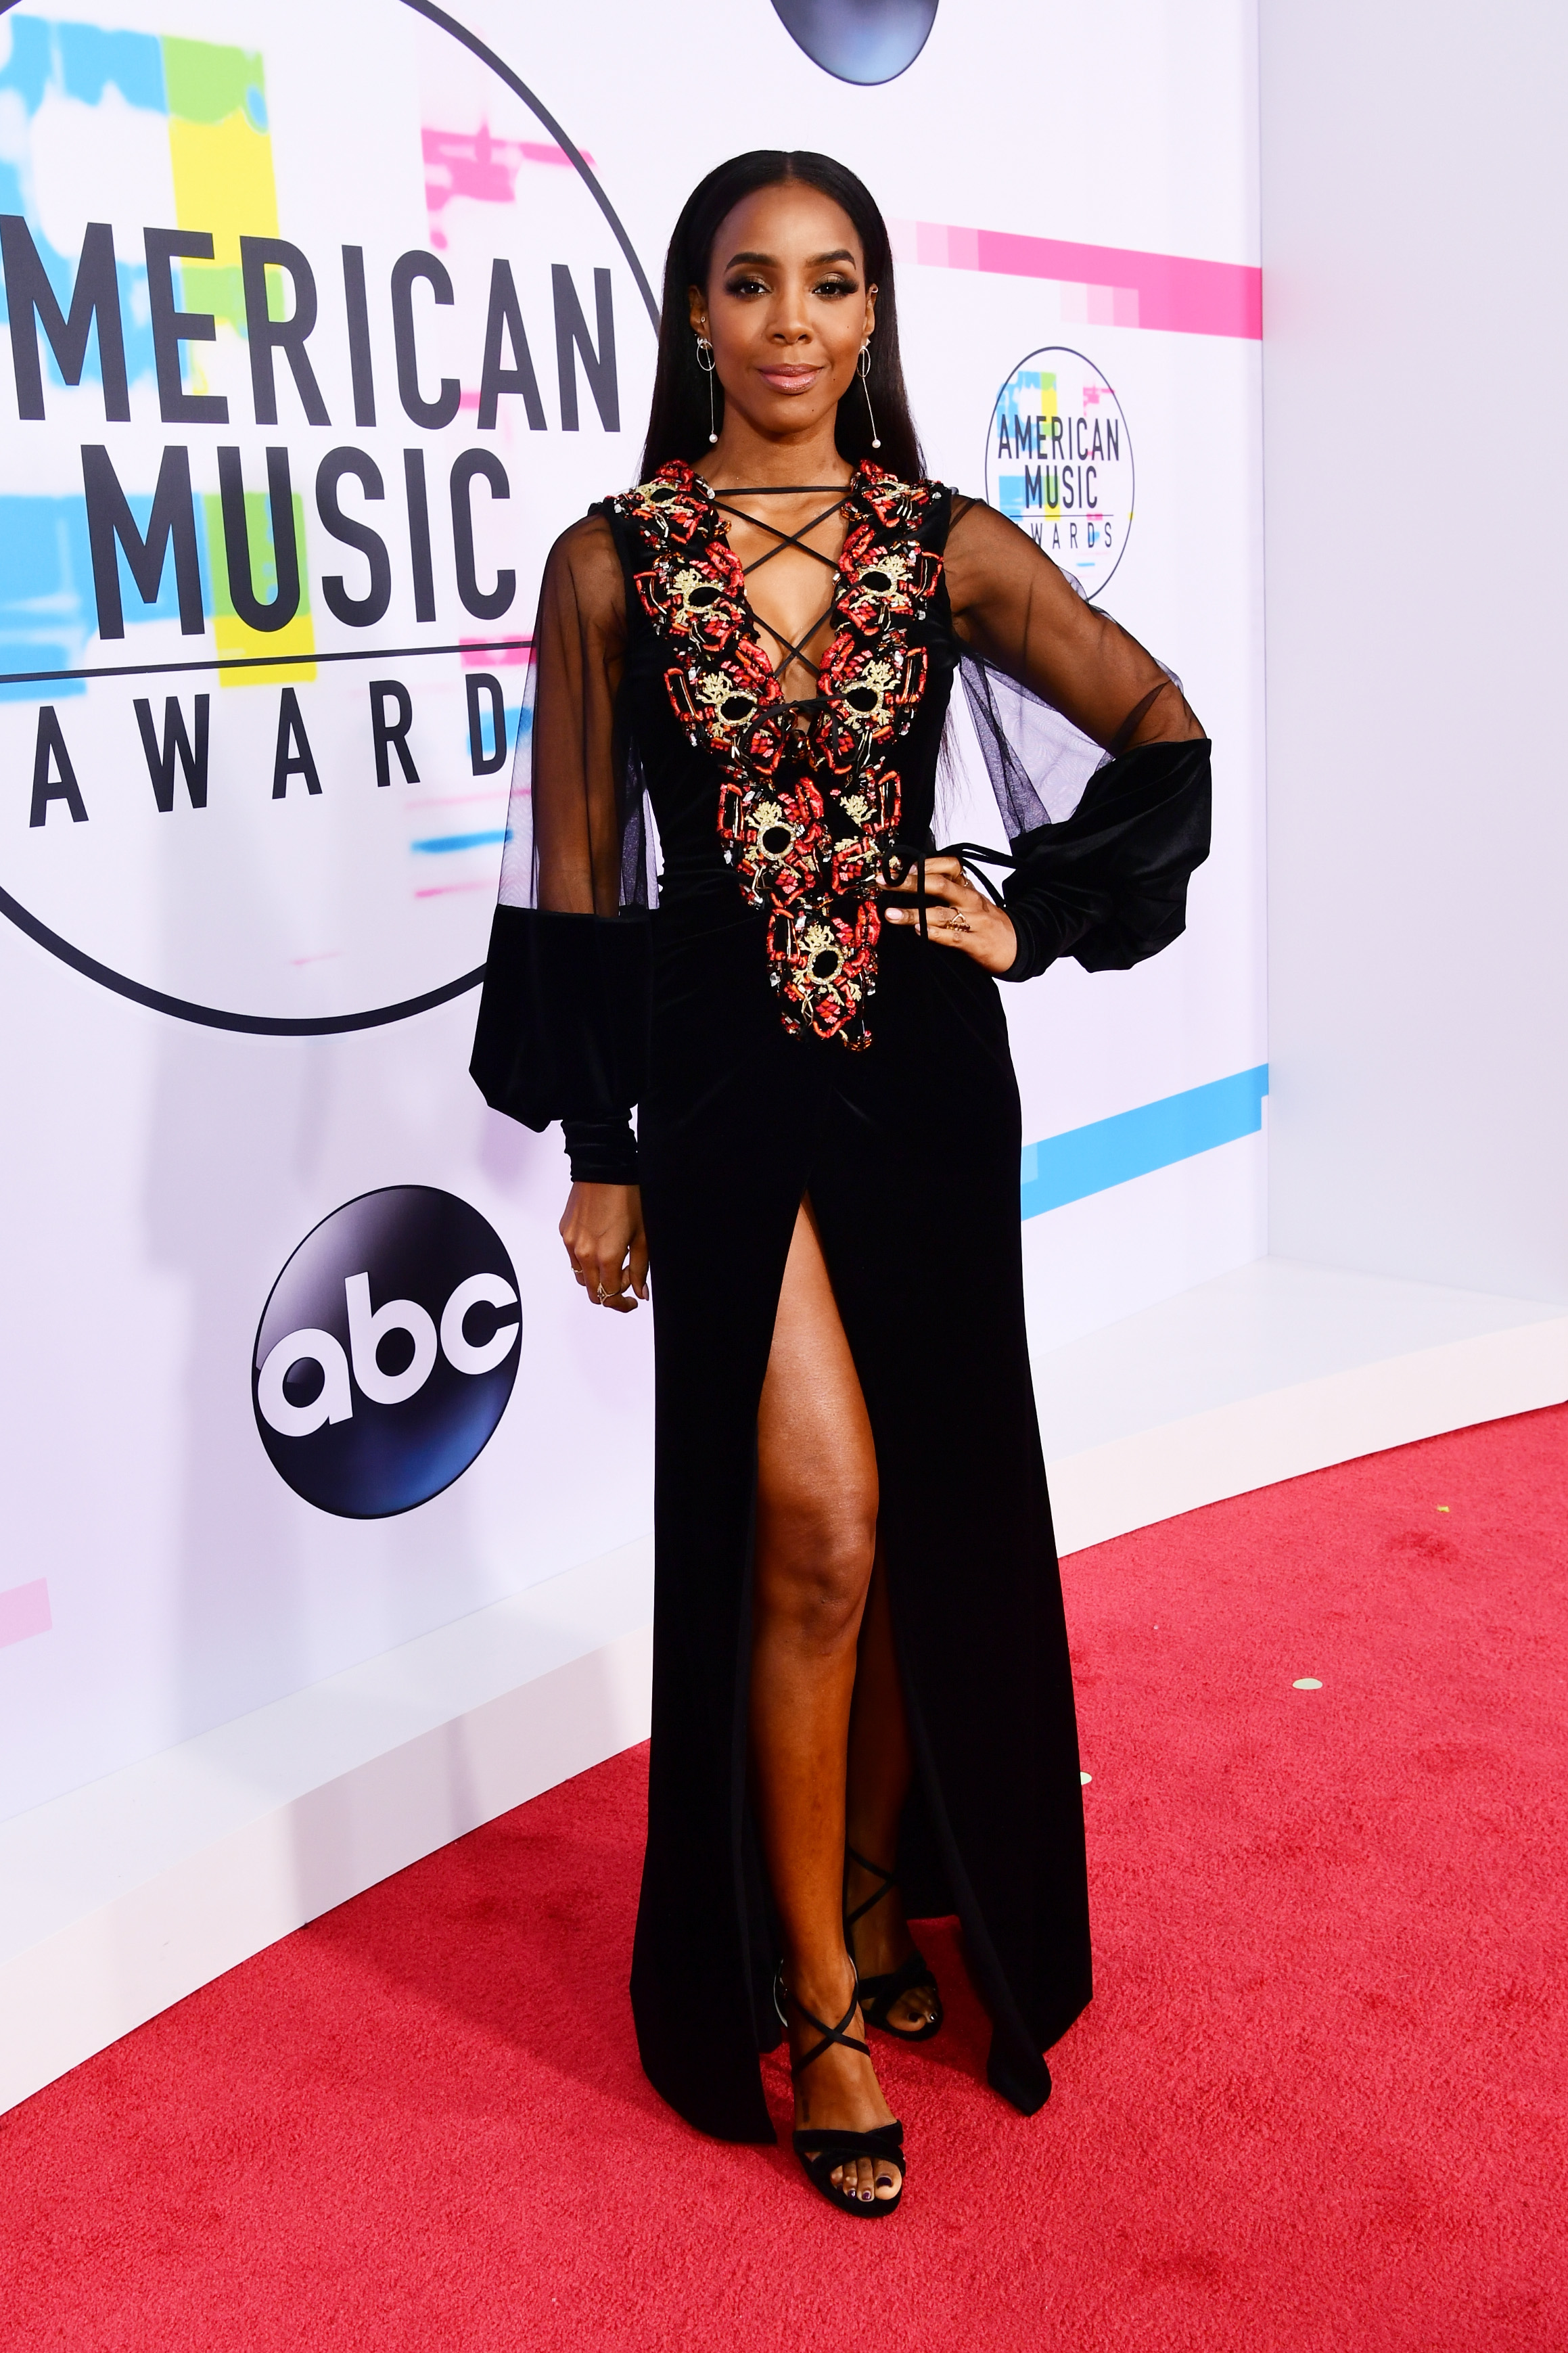 <div class='meta'><div class='origin-logo' data-origin='none'></div><span class='caption-text' data-credit='Emma McIntyre/AMA2017/Getty Images for dcp'>Kelly Rowland attends the 2017 American Music Awards at Microsoft Theater on November 19, 2017 in Los Angeles, California.</span></div>